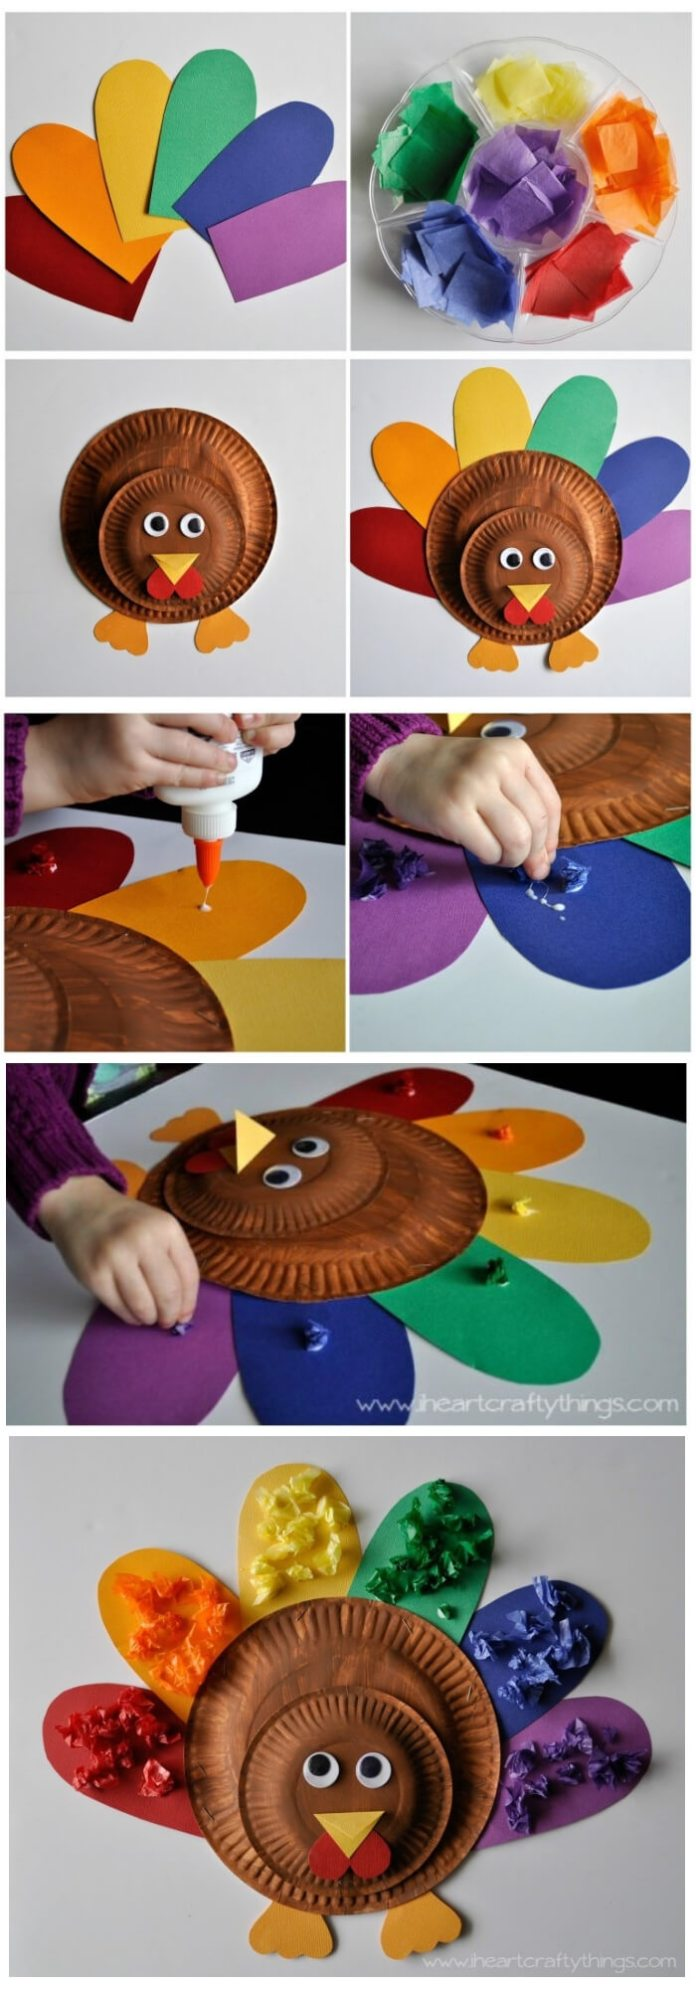 Cute and colorful kids turkey craft | Simple Ideas for Kids' Crafts for Thanksgiving - FarmFoodFamily.com